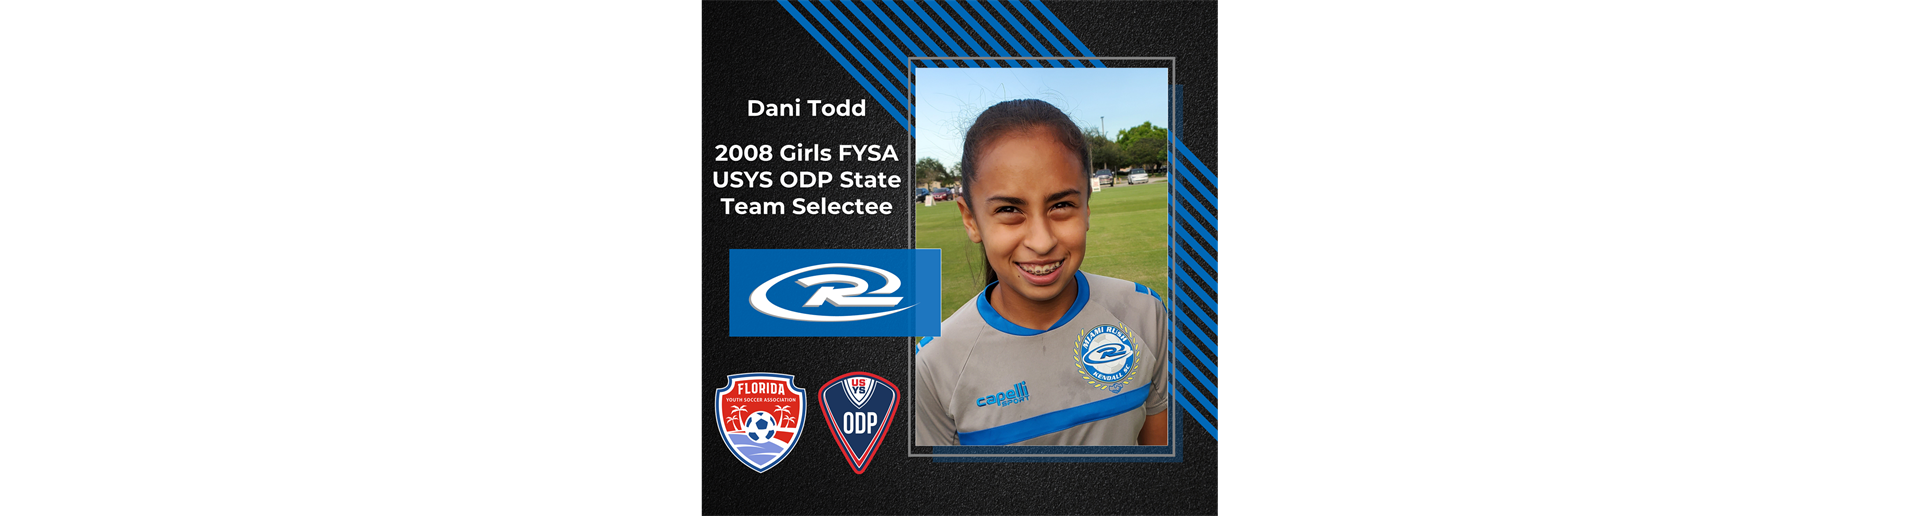 Dani Todd Selected to 2008 Girls ODP Florida State Team